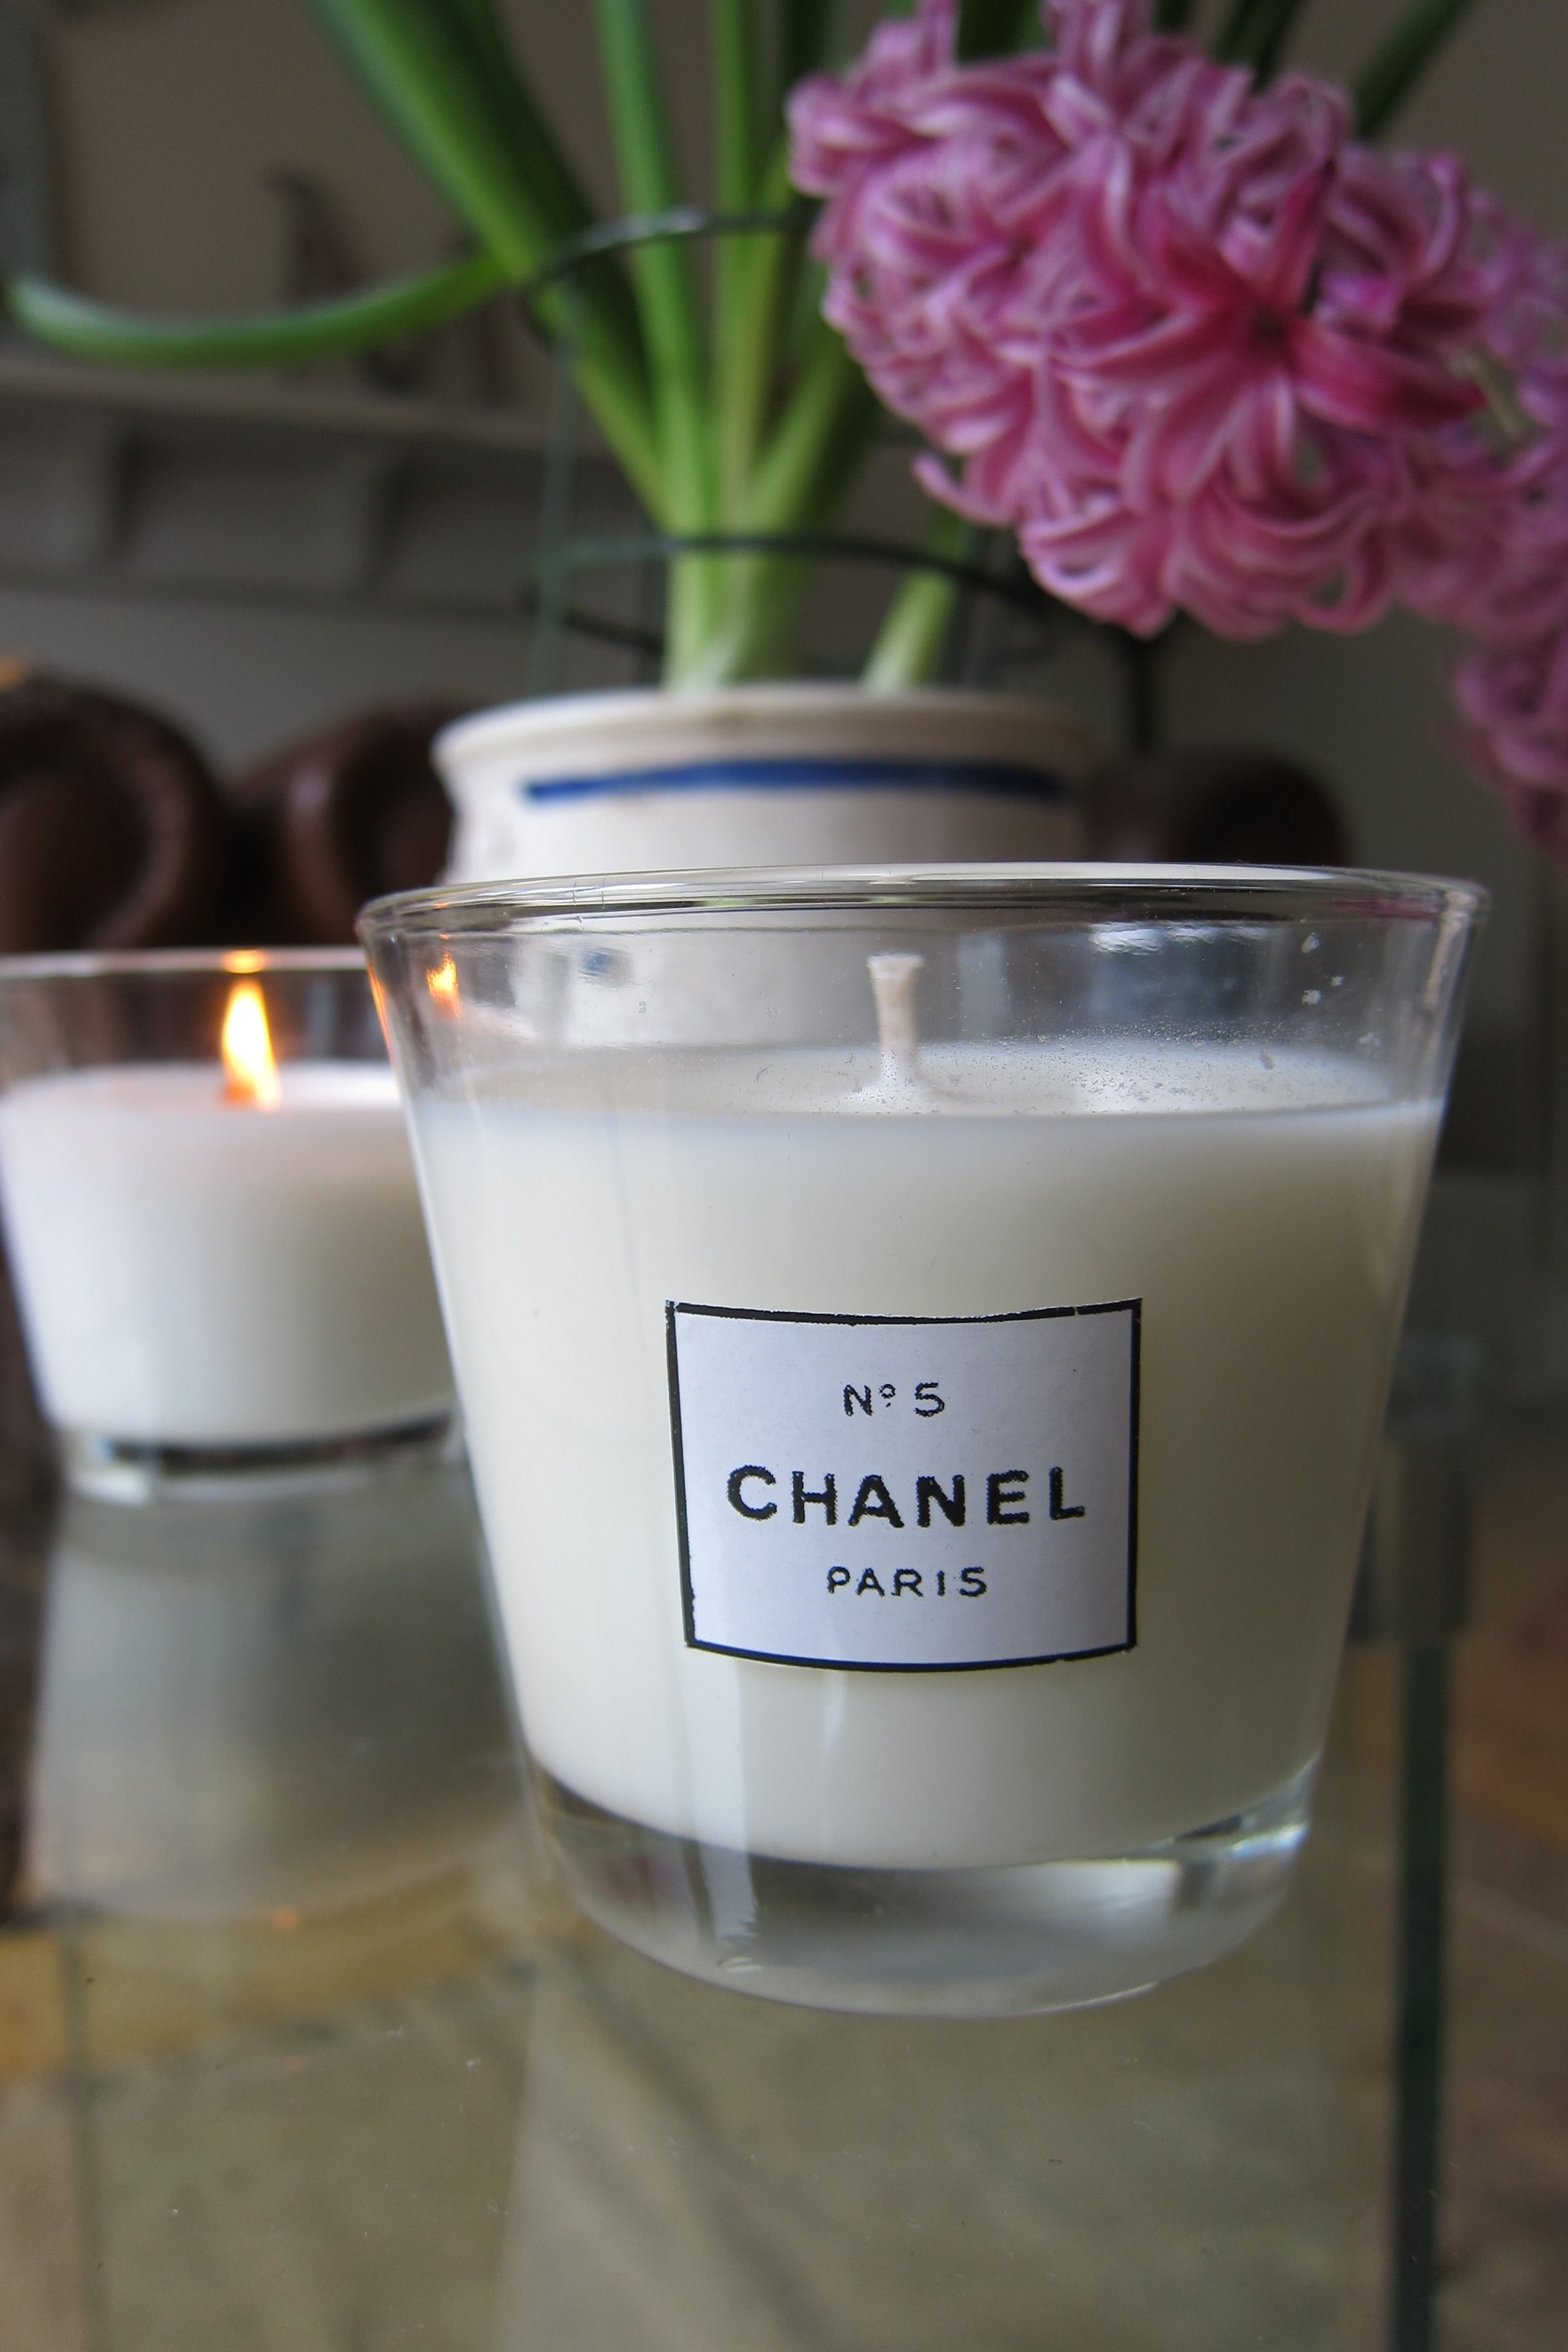 diy candles i made my own including one with chanel no 5 candle fragrance easy instructions. Black Bedroom Furniture Sets. Home Design Ideas